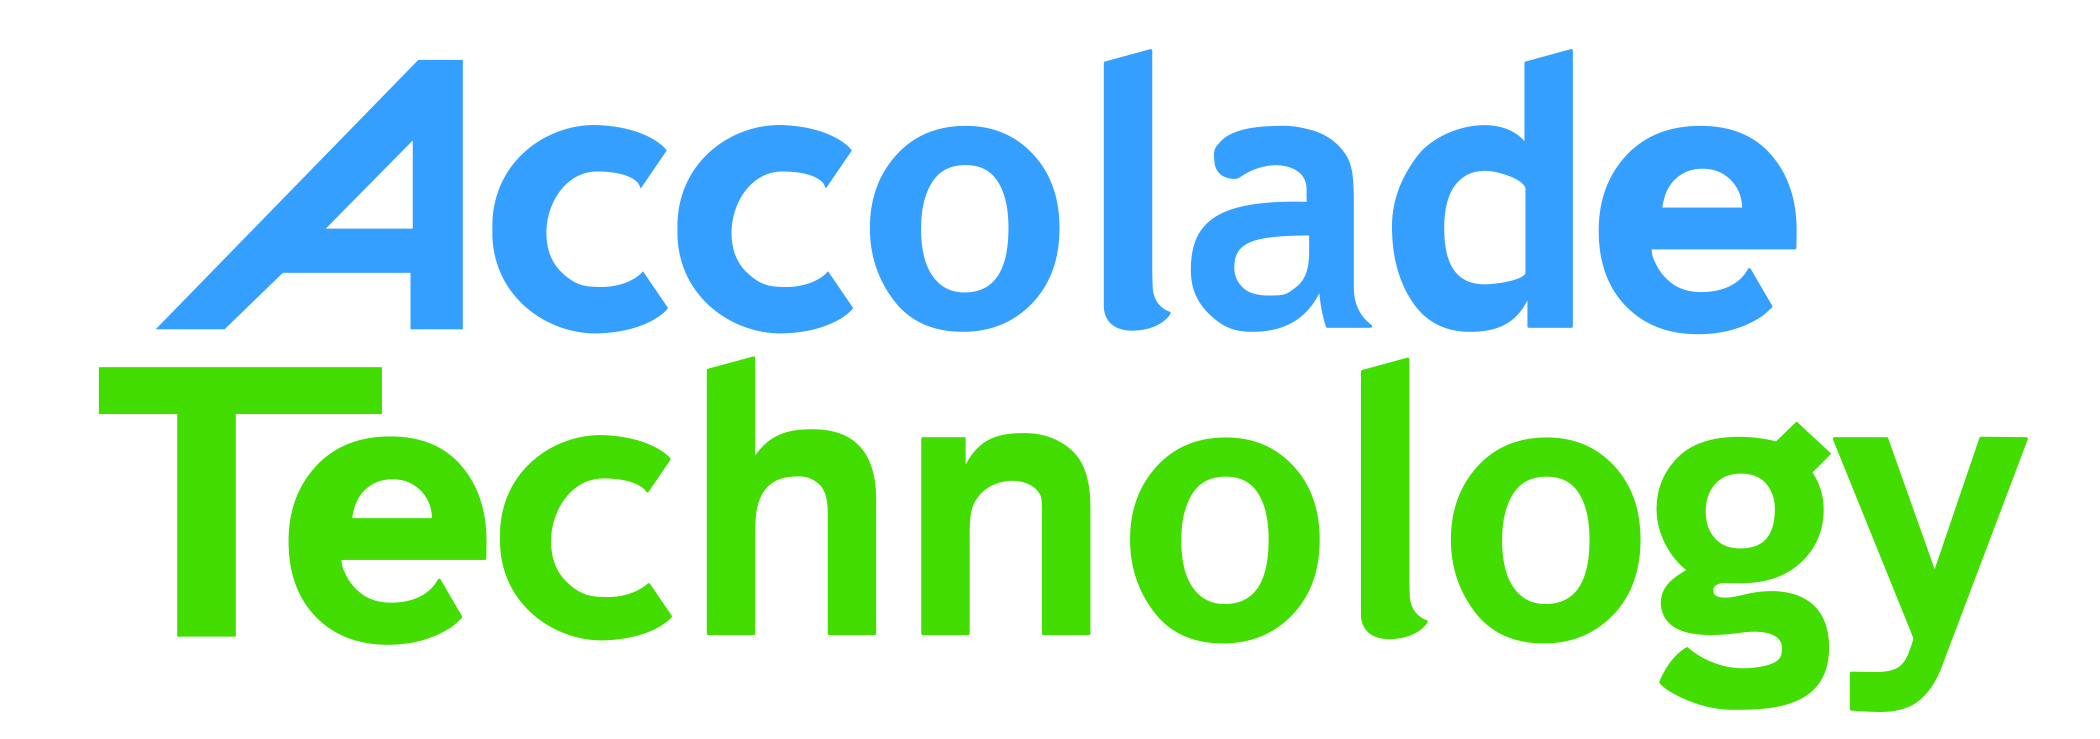 Accolade Technology Logo